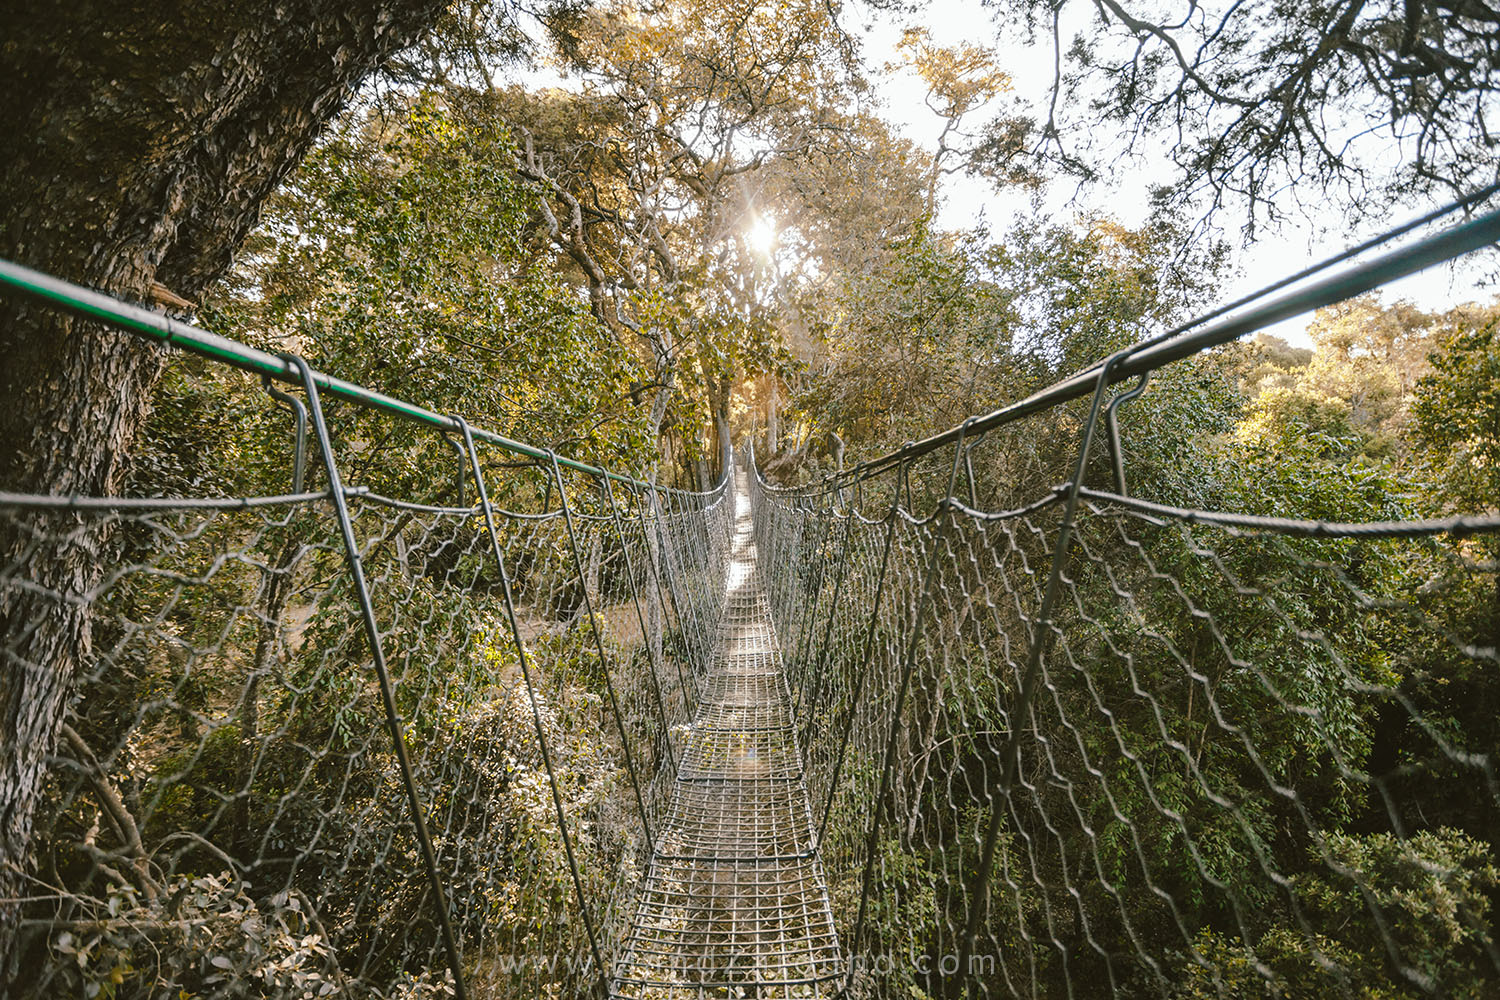 006_HANDZAROUND_NGARE_NDARE_FOREST_CANOPY_WALK_NRT_THE_BIG_NORTH_LAIKIPIA_KENYA_AFRICA.jpg